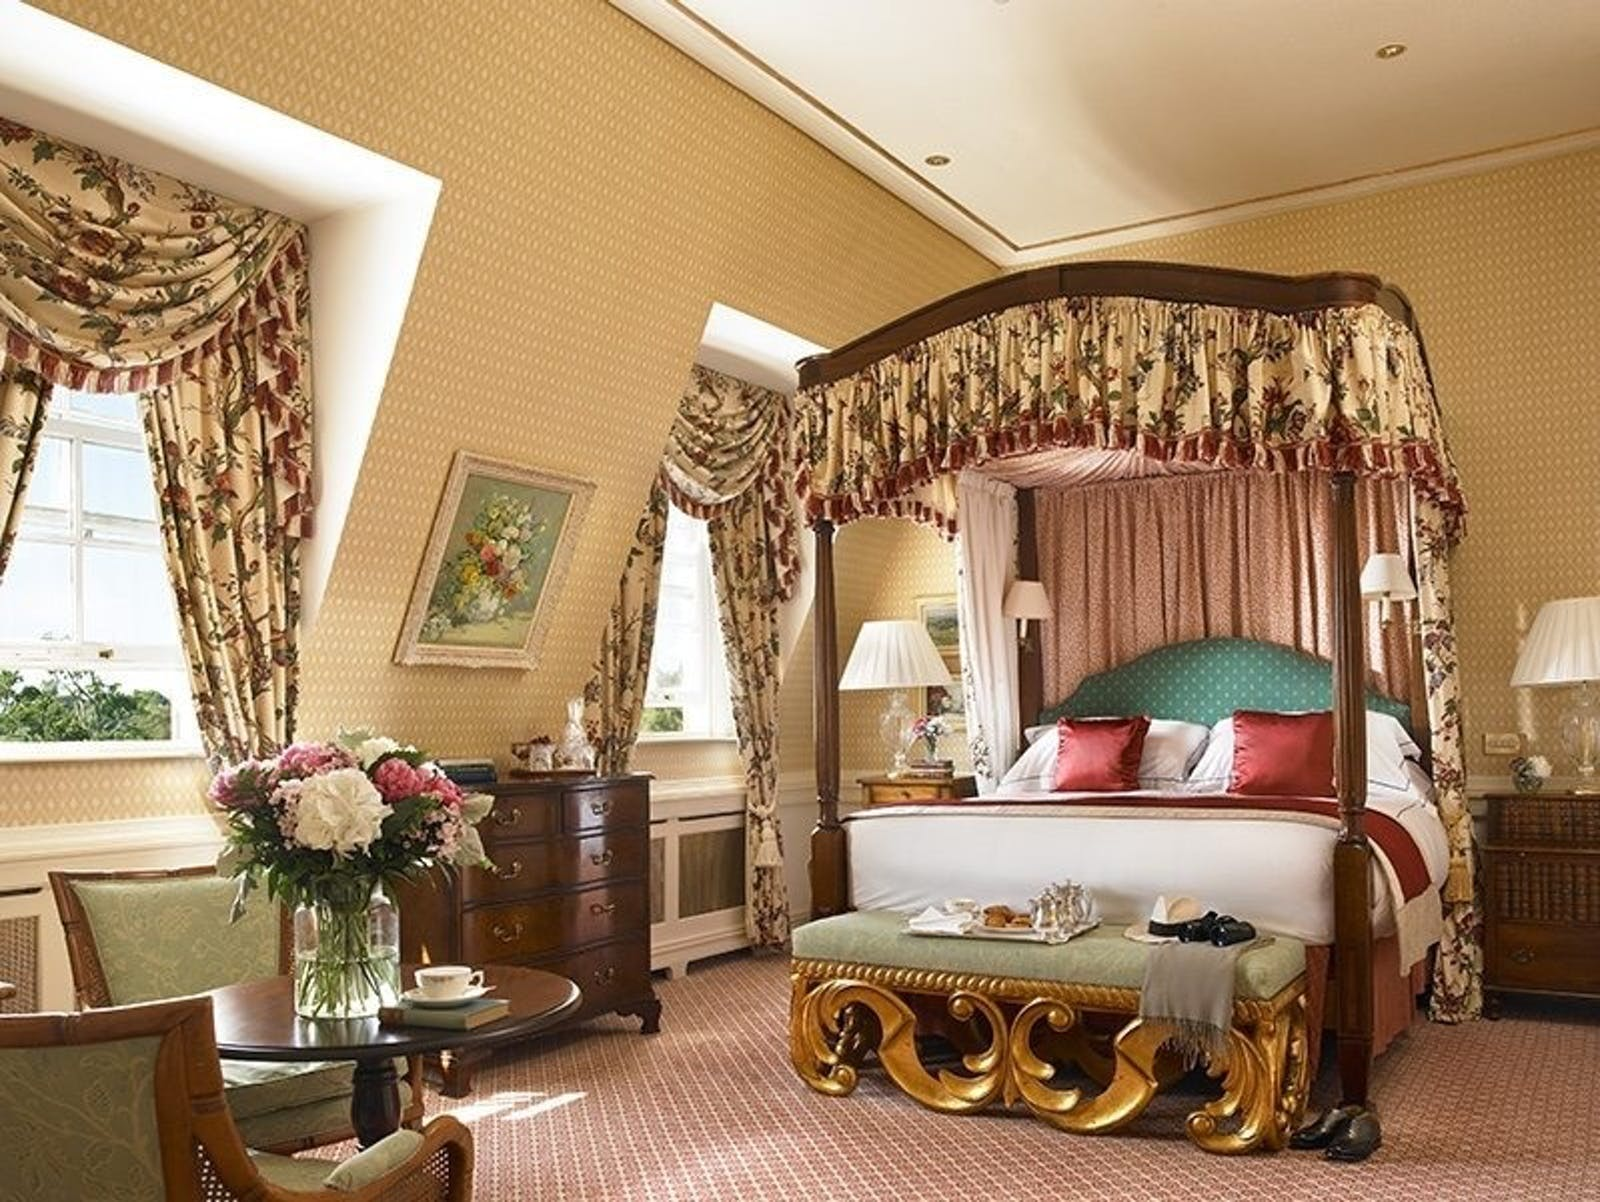 Presidential Suite at The K Club Hotel, Ireland